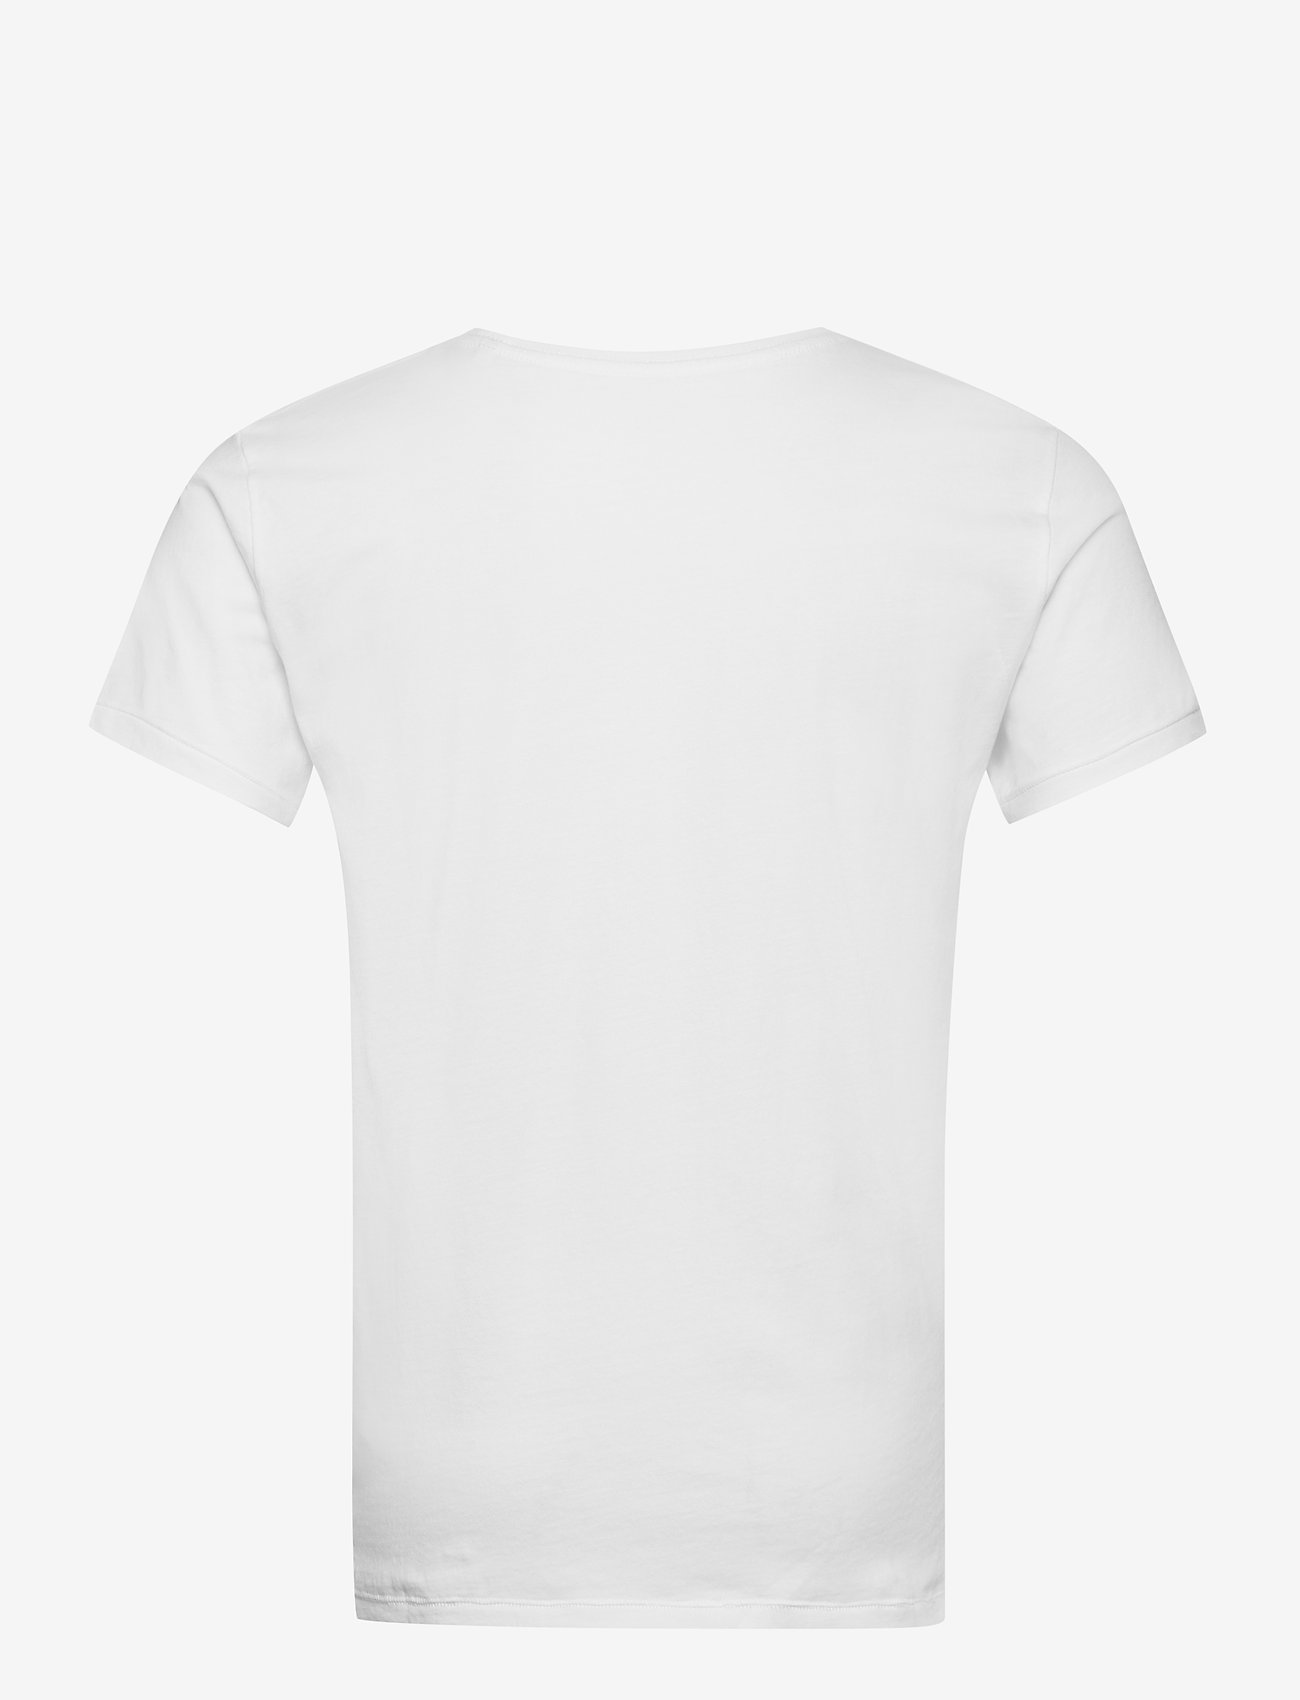 Knowledge Cotton Apparel - ALDER 5 pack basic tee - flat packe - basic t-shirts - bright white - 2